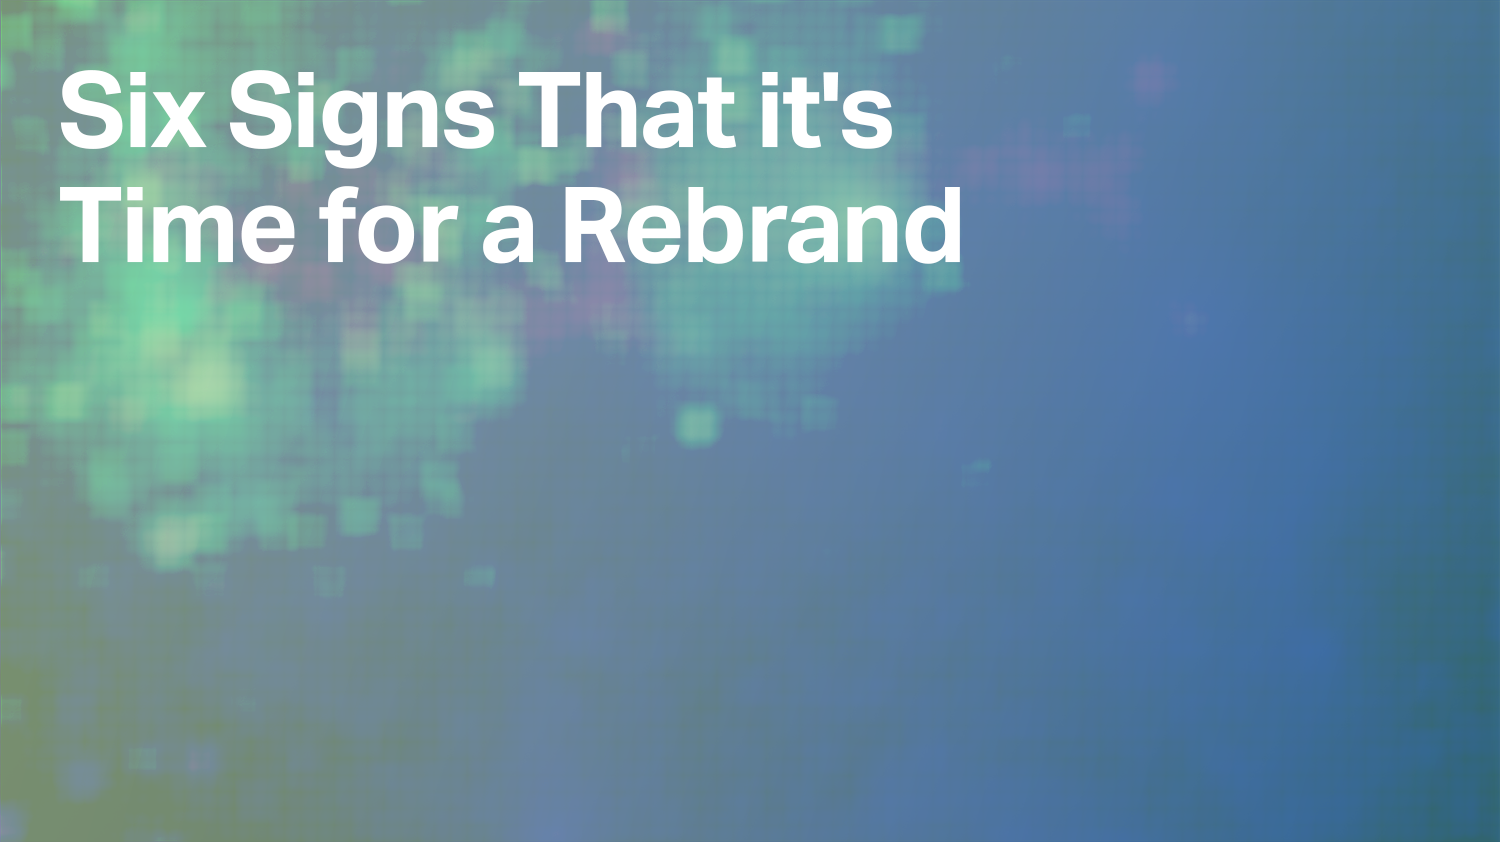 Six Signs That it's Time for a Rebrand